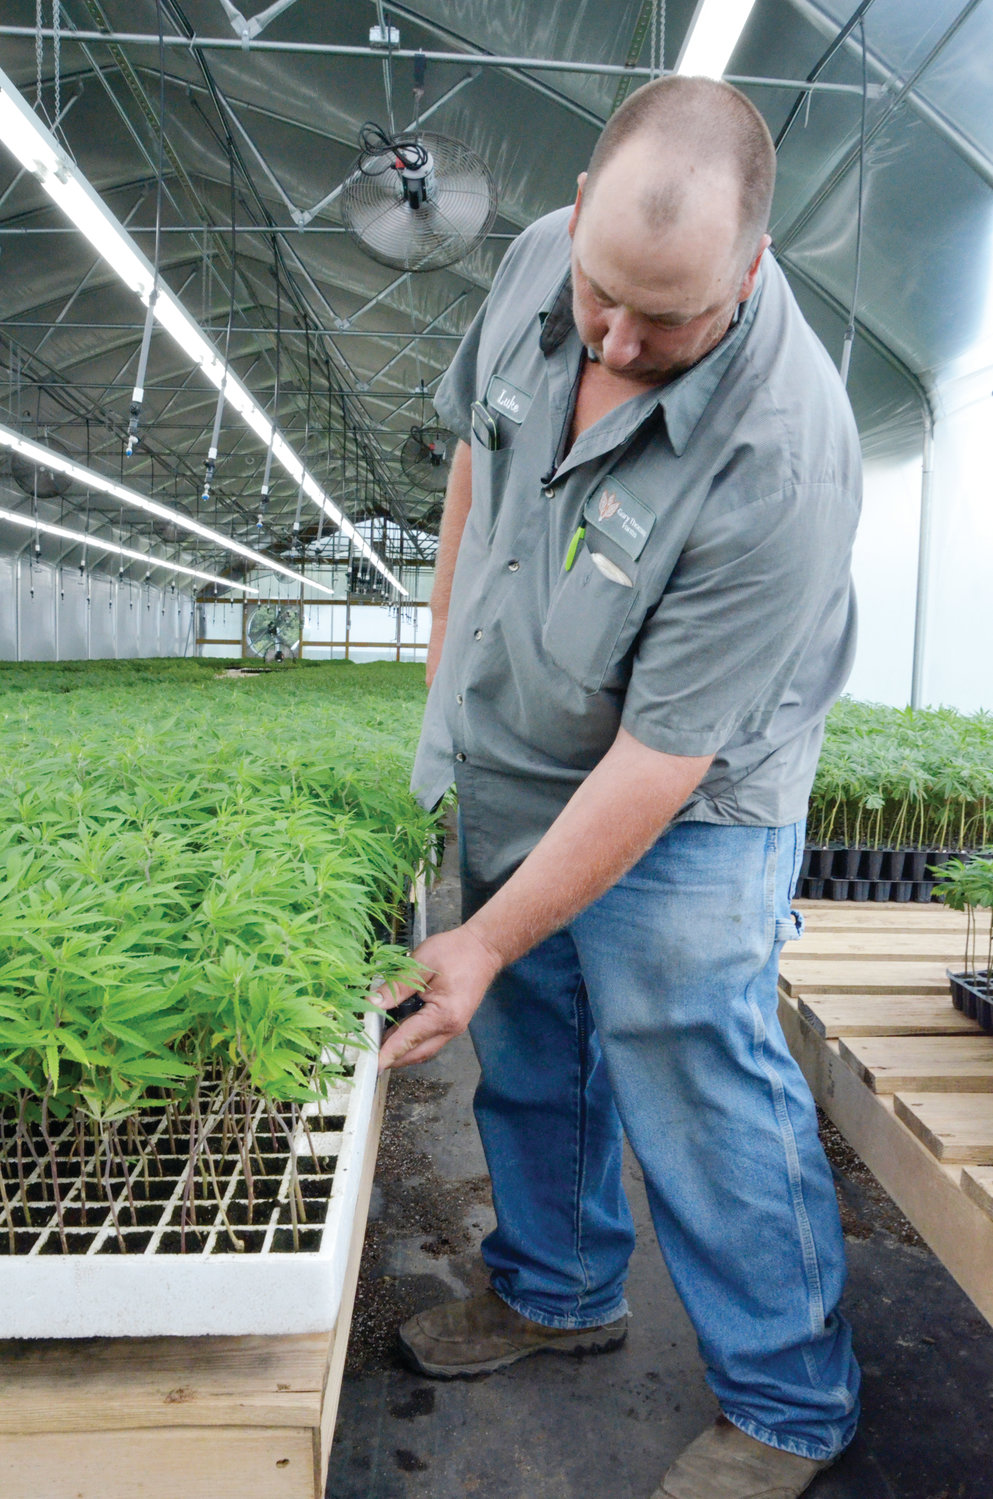 Luke Thomas of the Gary Thomas Farms cultivates industrial hemp clones to expand their own production as well as sell to other hemp farmers.